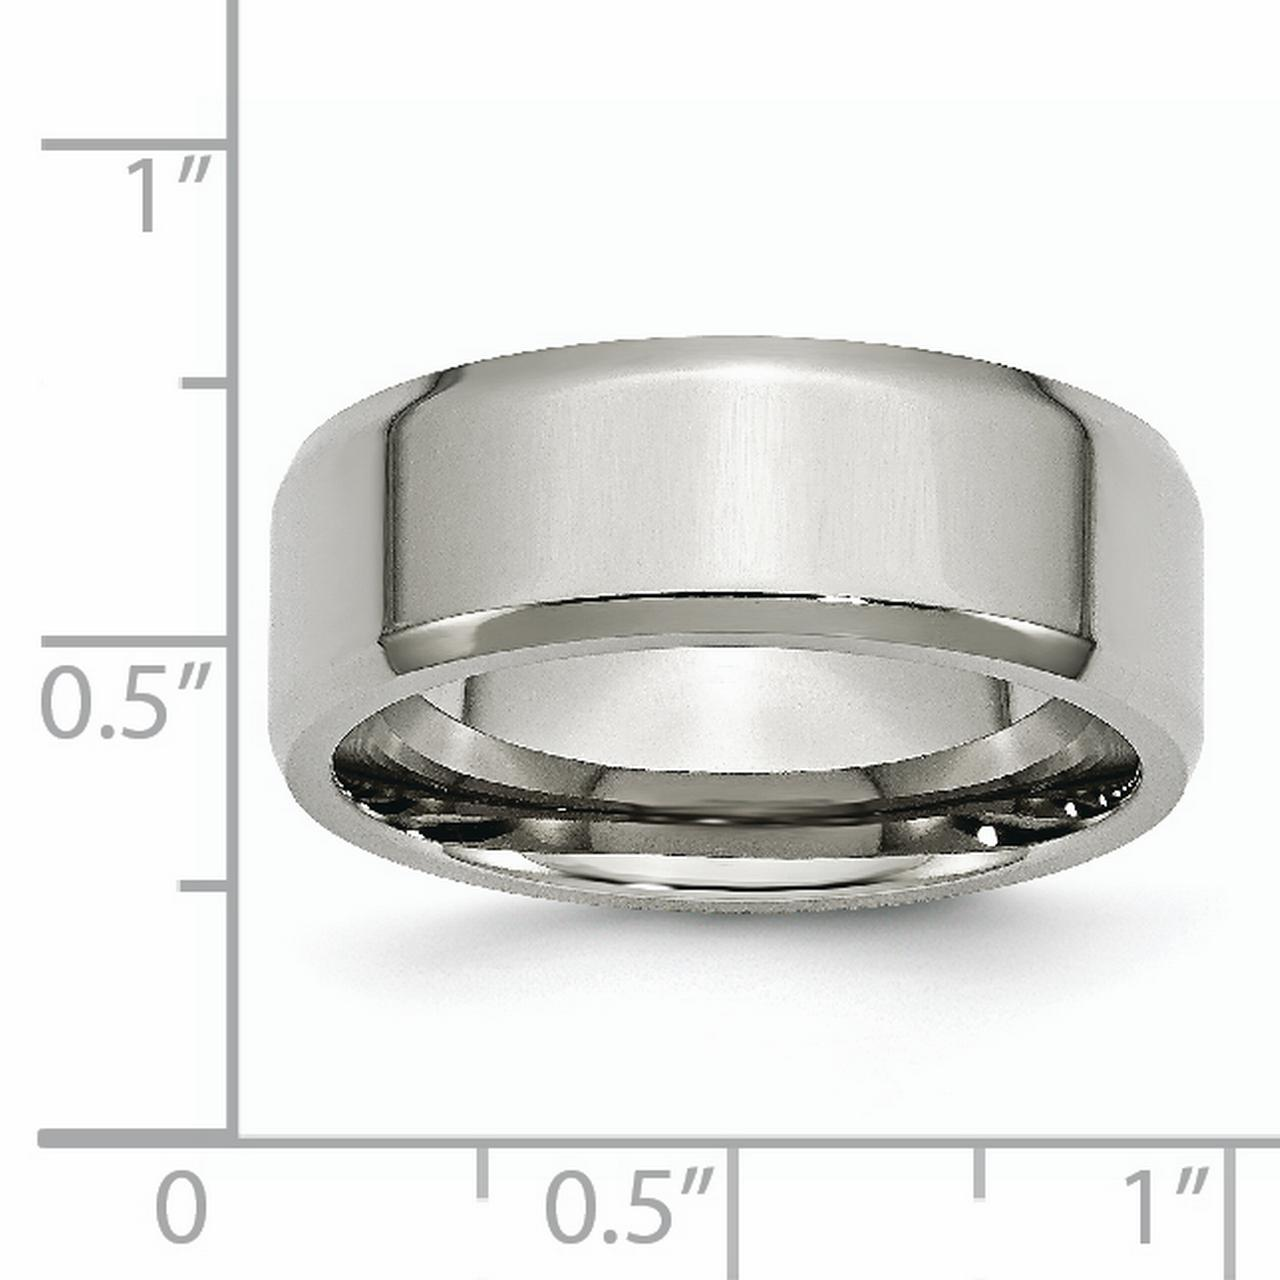 Stainless Steel Beveled Edge 8mm Wedding Ring Band Size 8.00 Classic Flat W/edge Fashion Jewelry Gifts For Women For Her - image 3 of 6